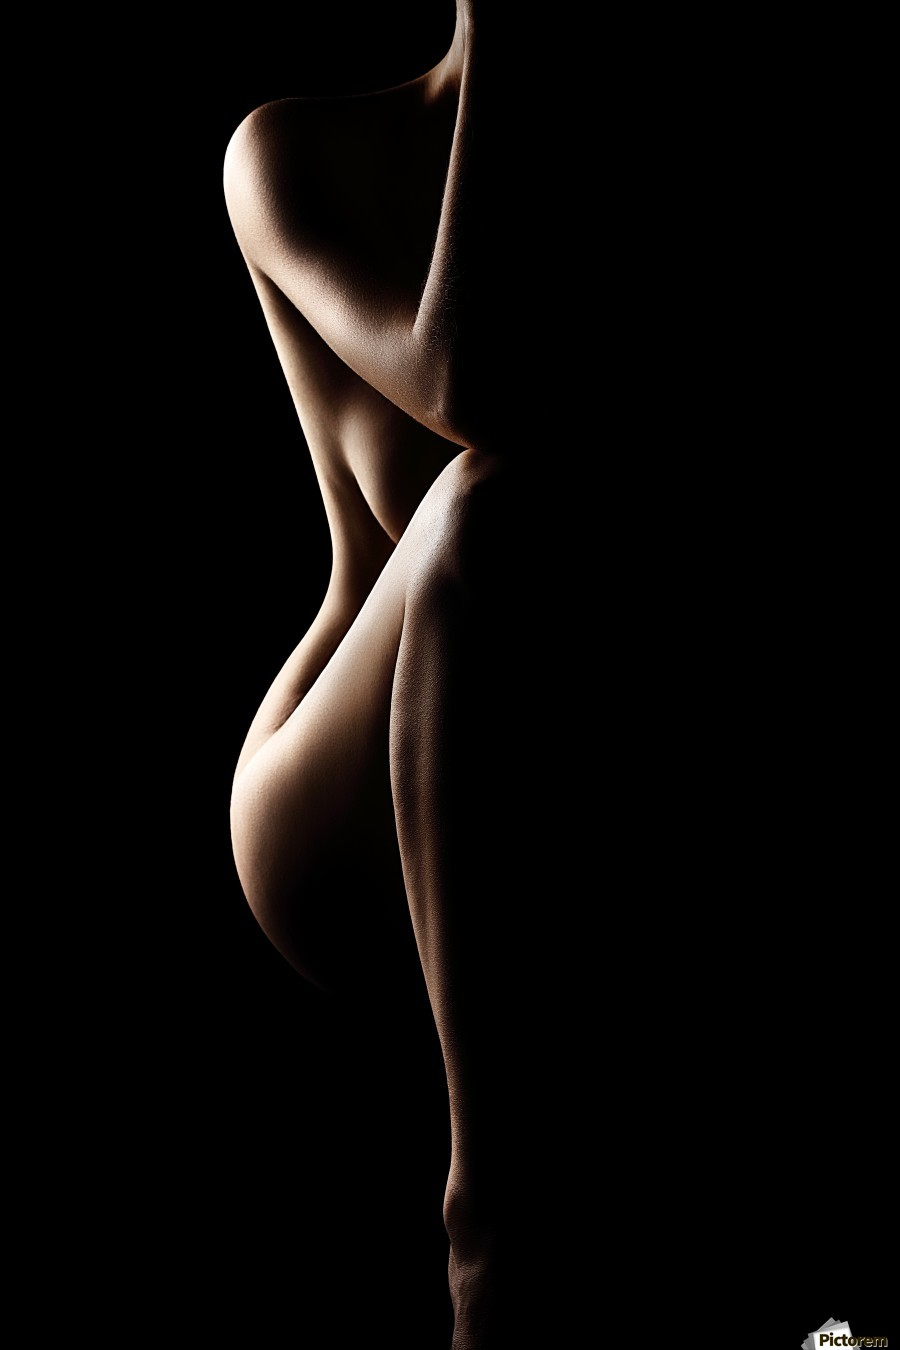 Silhouette of nude woman  Print